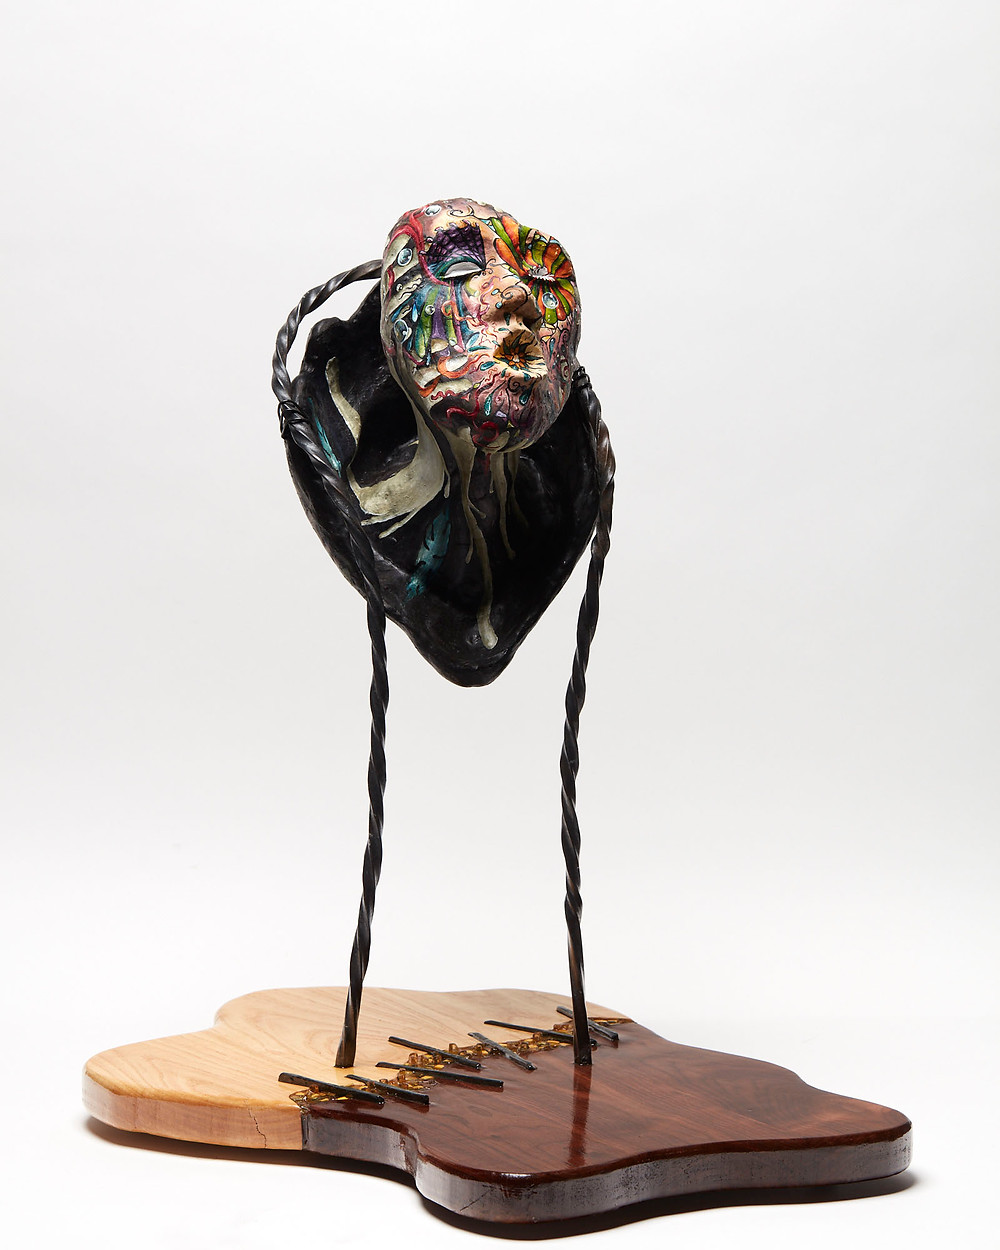 Sculpted oil painted head depicting the mental illness of Bipolar